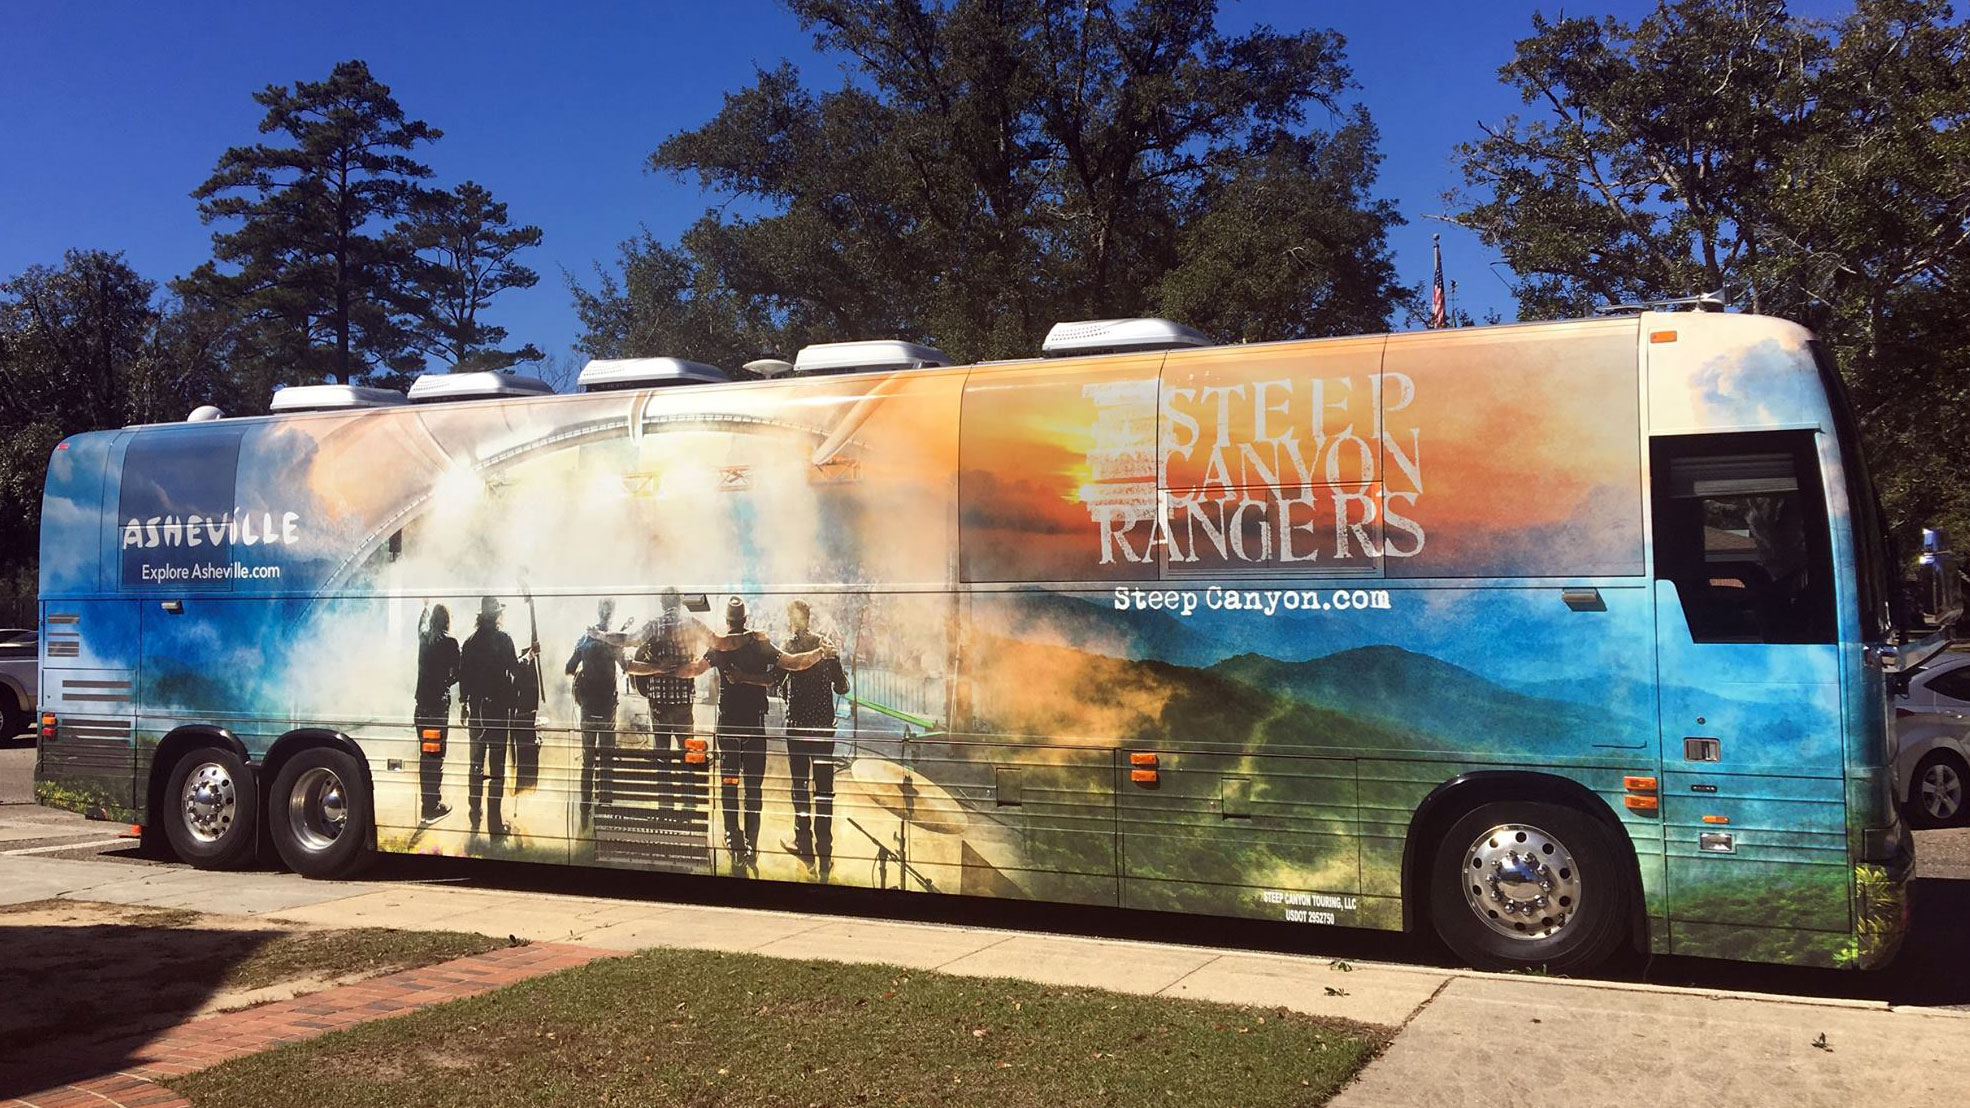 Steep Canyon Rangers bus will be rolling Asheville billboard